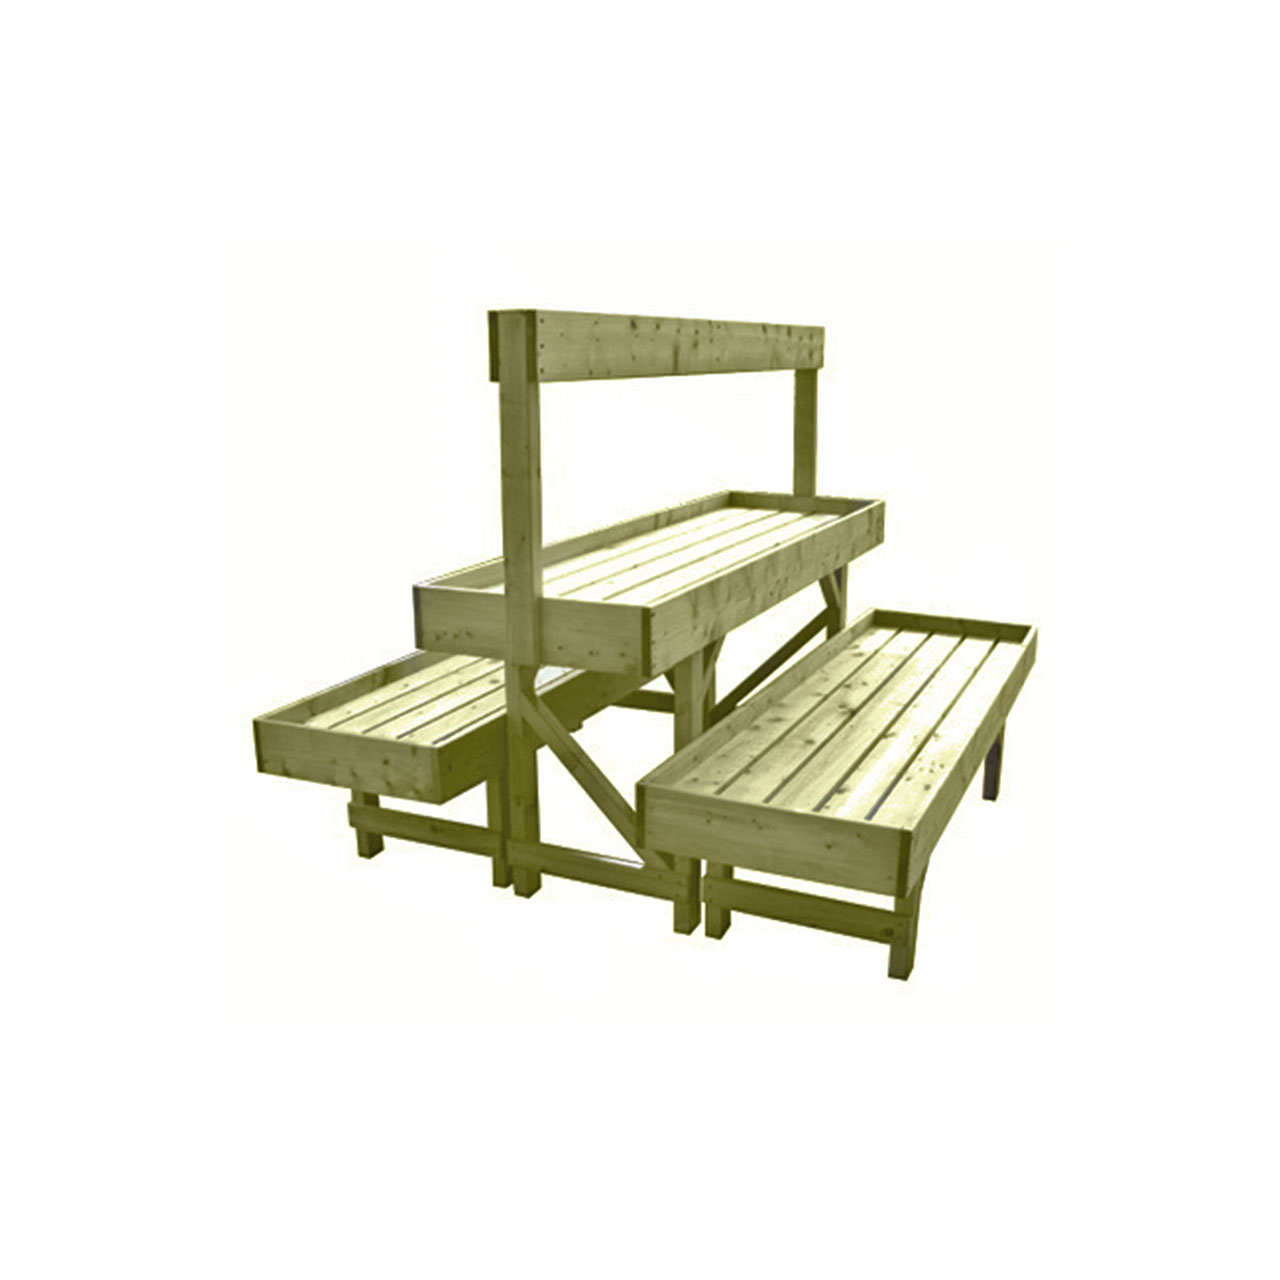 Double Flood Bench